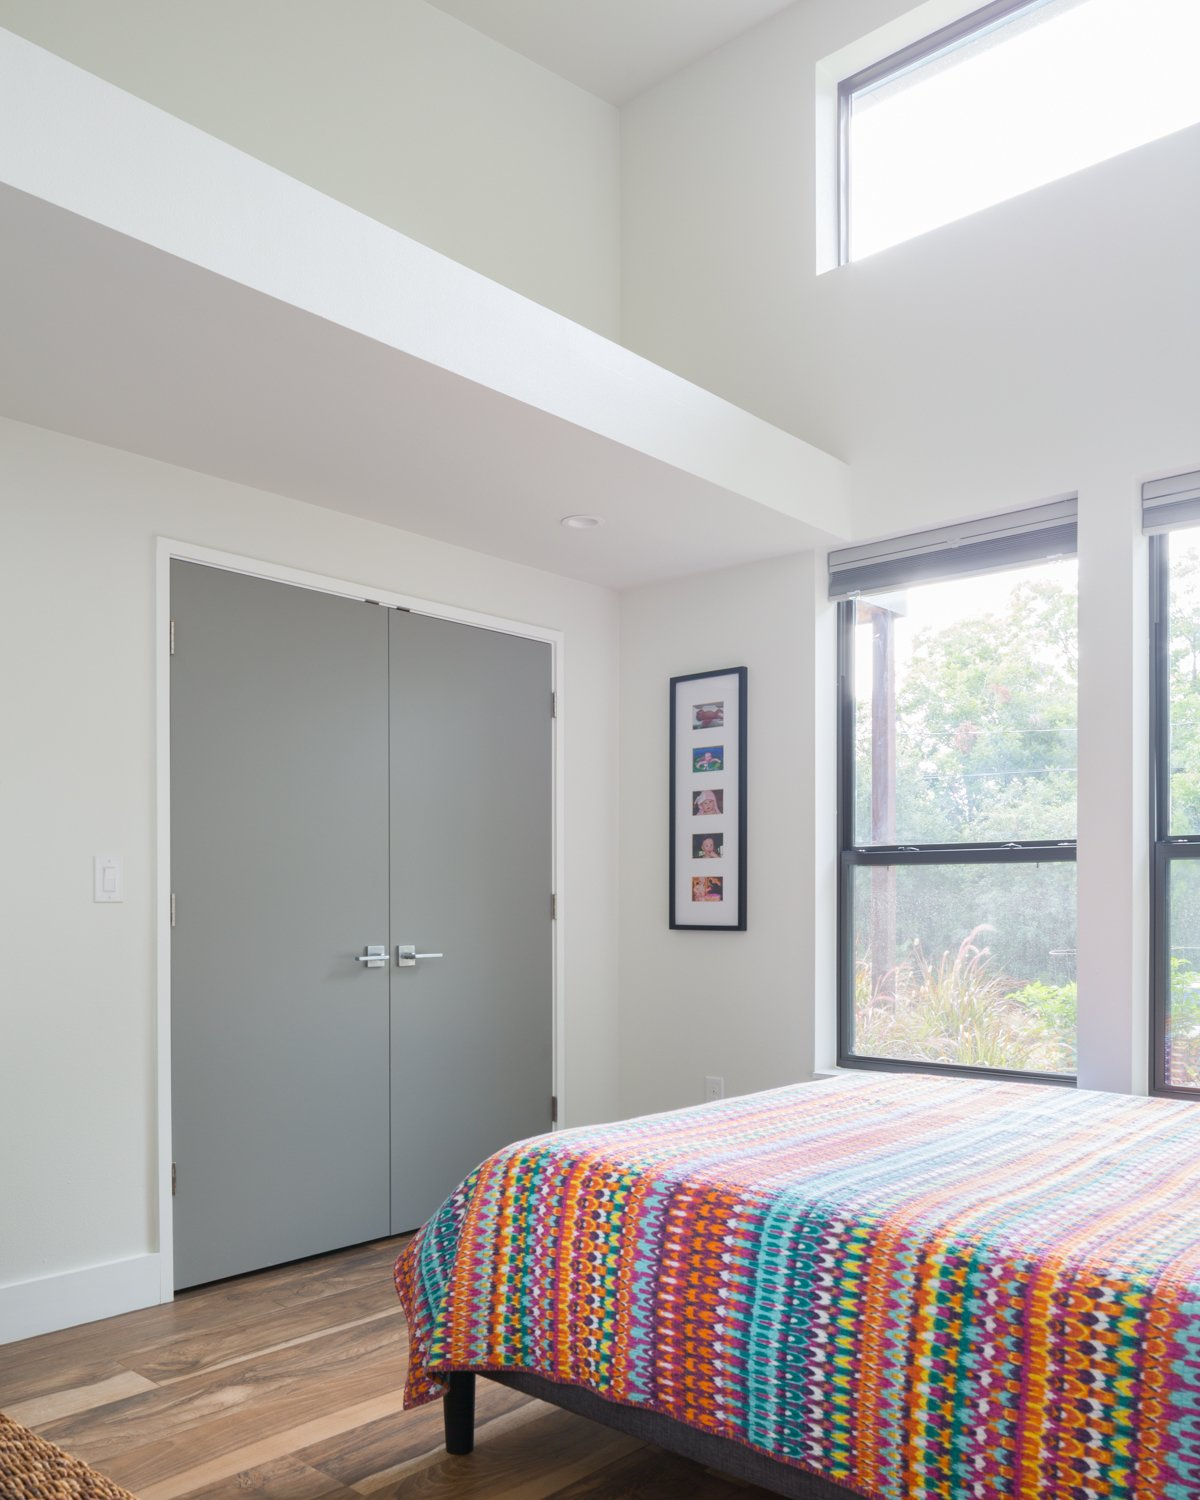 Bedroom and Bed Bedroom  Norris House by Davey McEathron Architecture